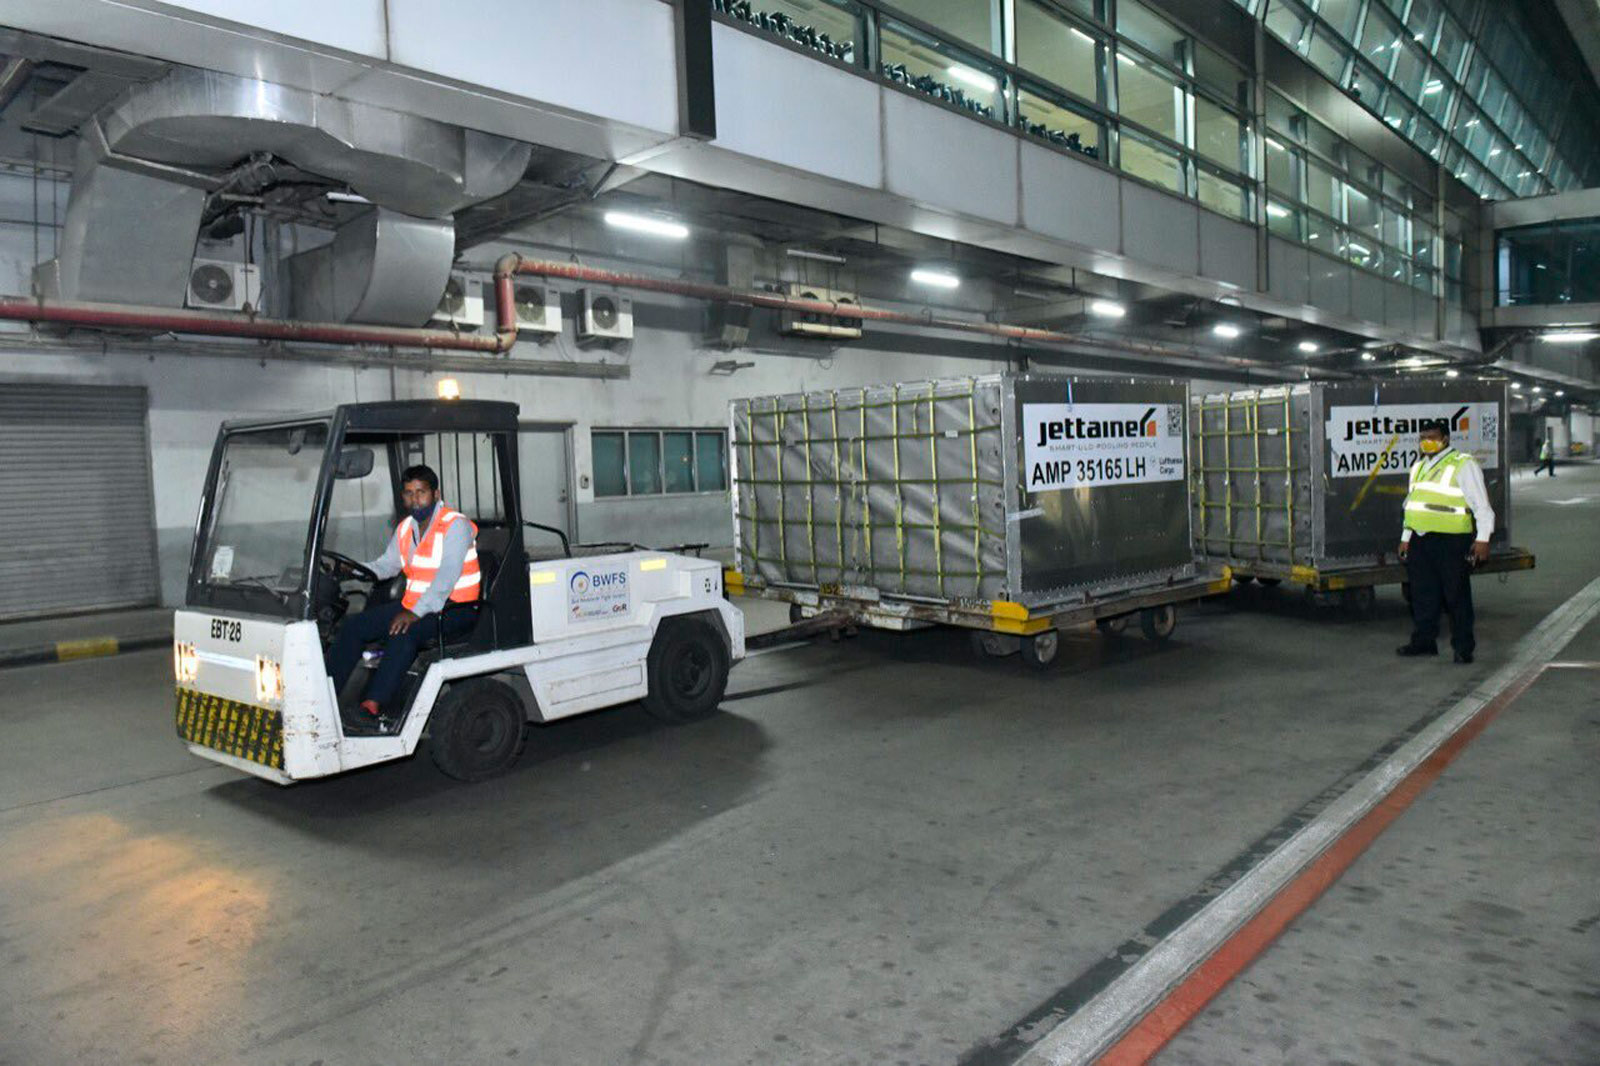 This photograph released by the Indian External Affairs Ministry shows a shipment containing 120 oxygen concentrators that arrived in India from the UK on April 29.